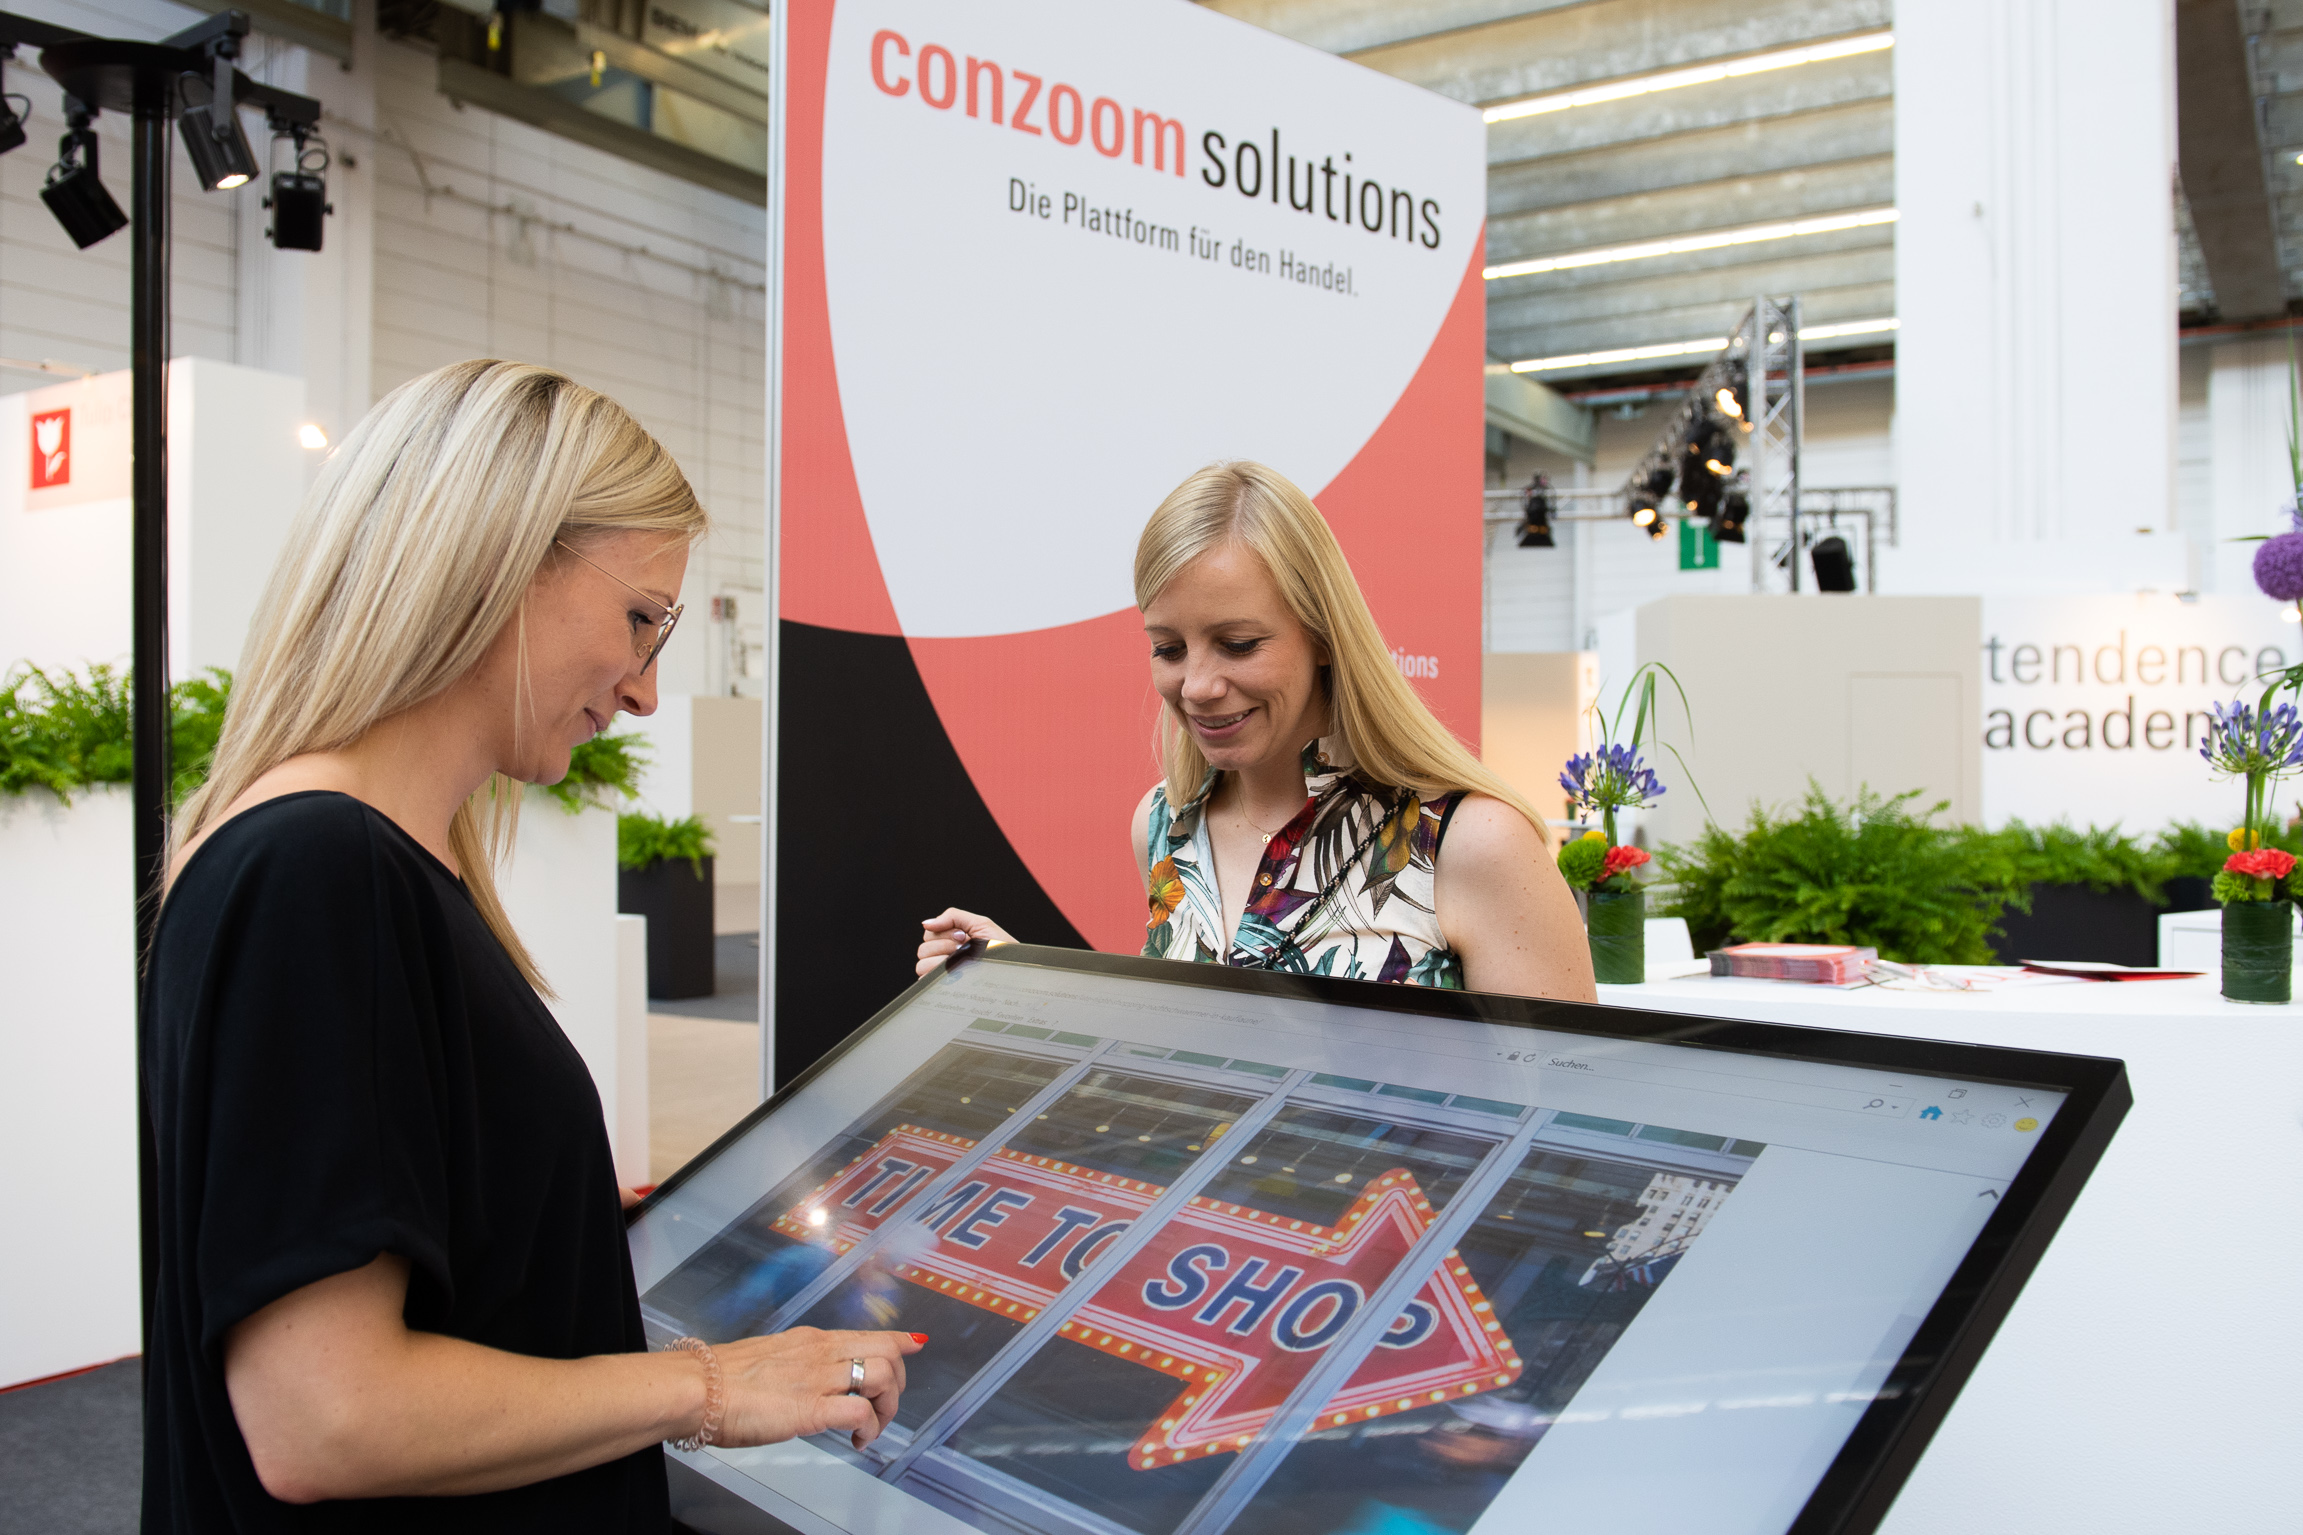 Conzoom Solutions